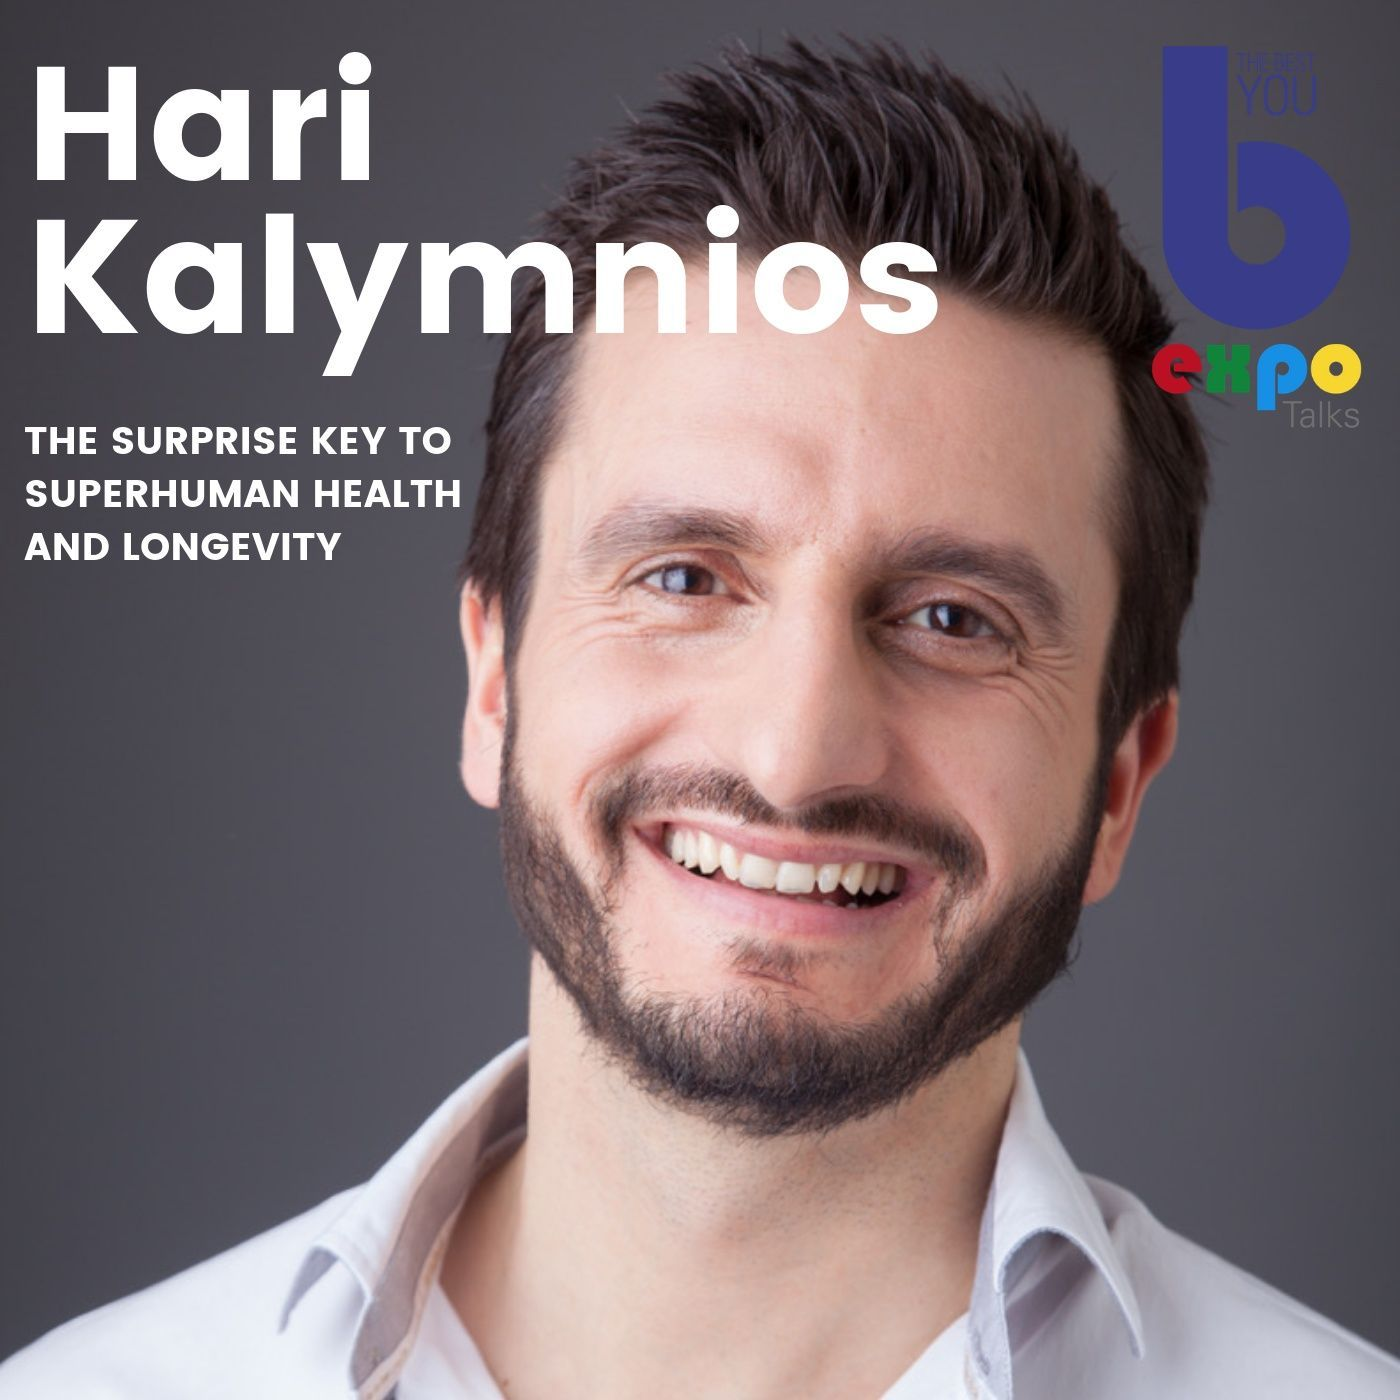 Listen to Hari Kalymnios at The Best You EXPO